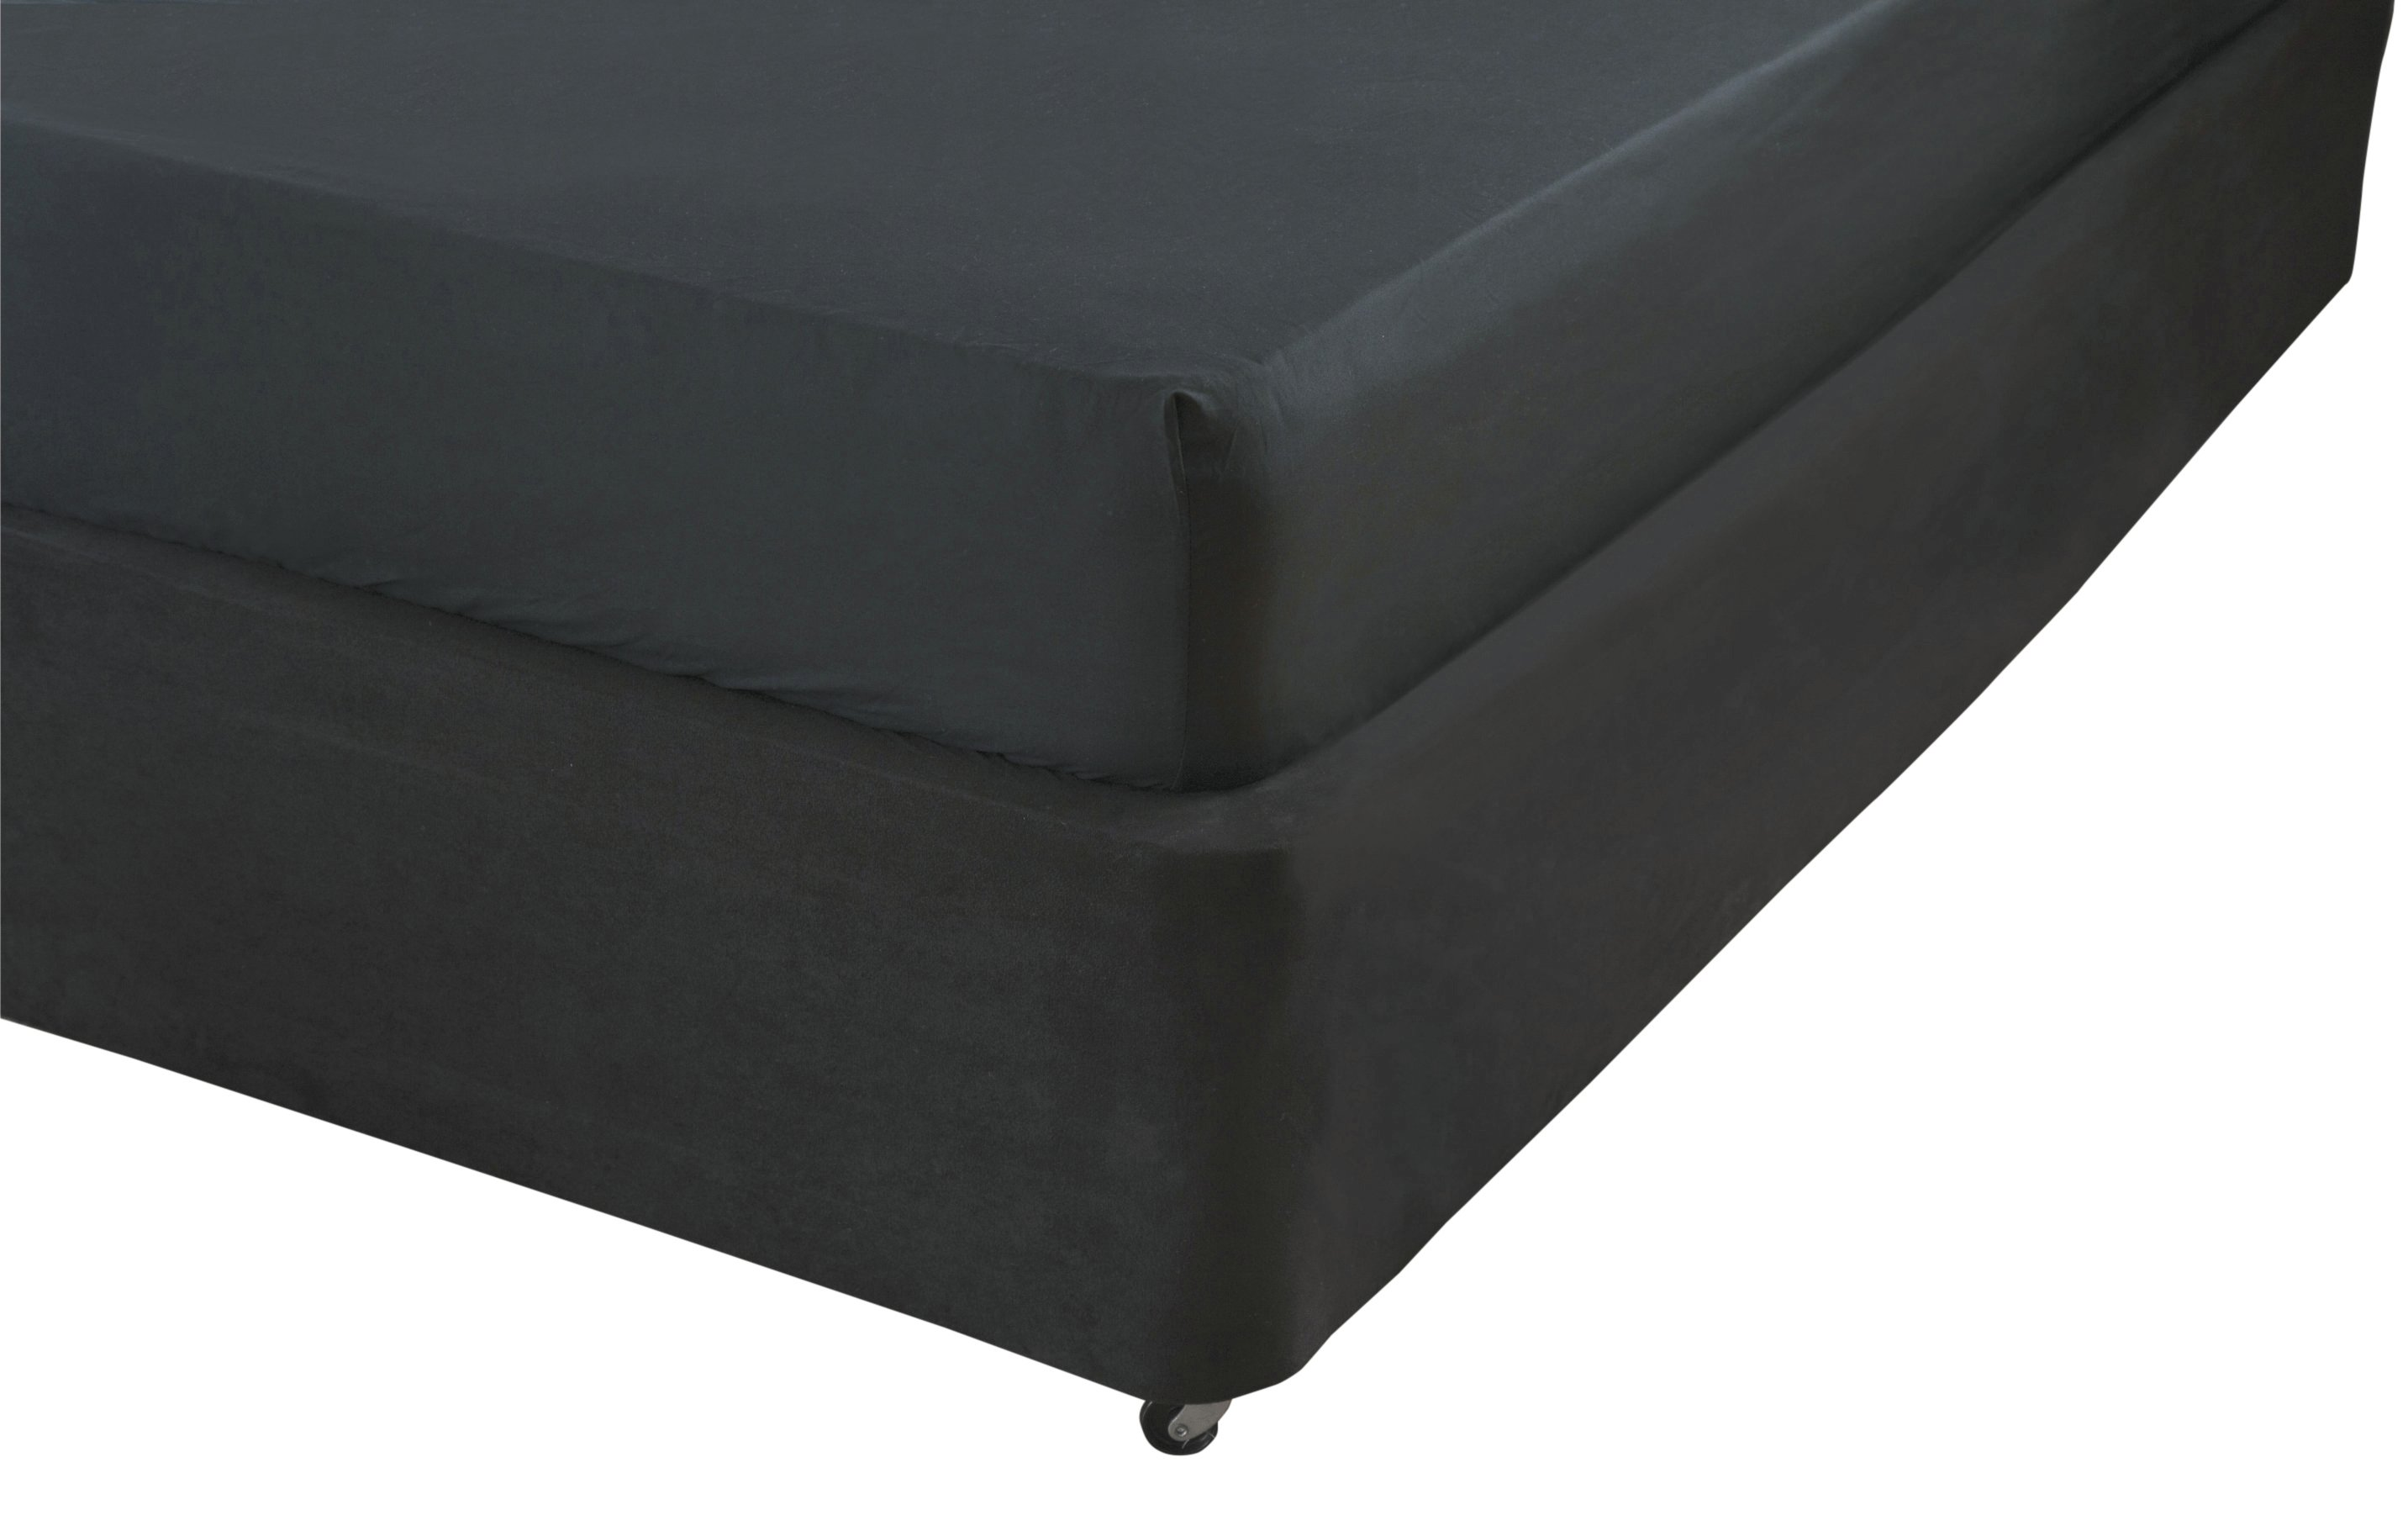 Image of Belledorm - Black Base Wrap 15 Inch - Kingsize